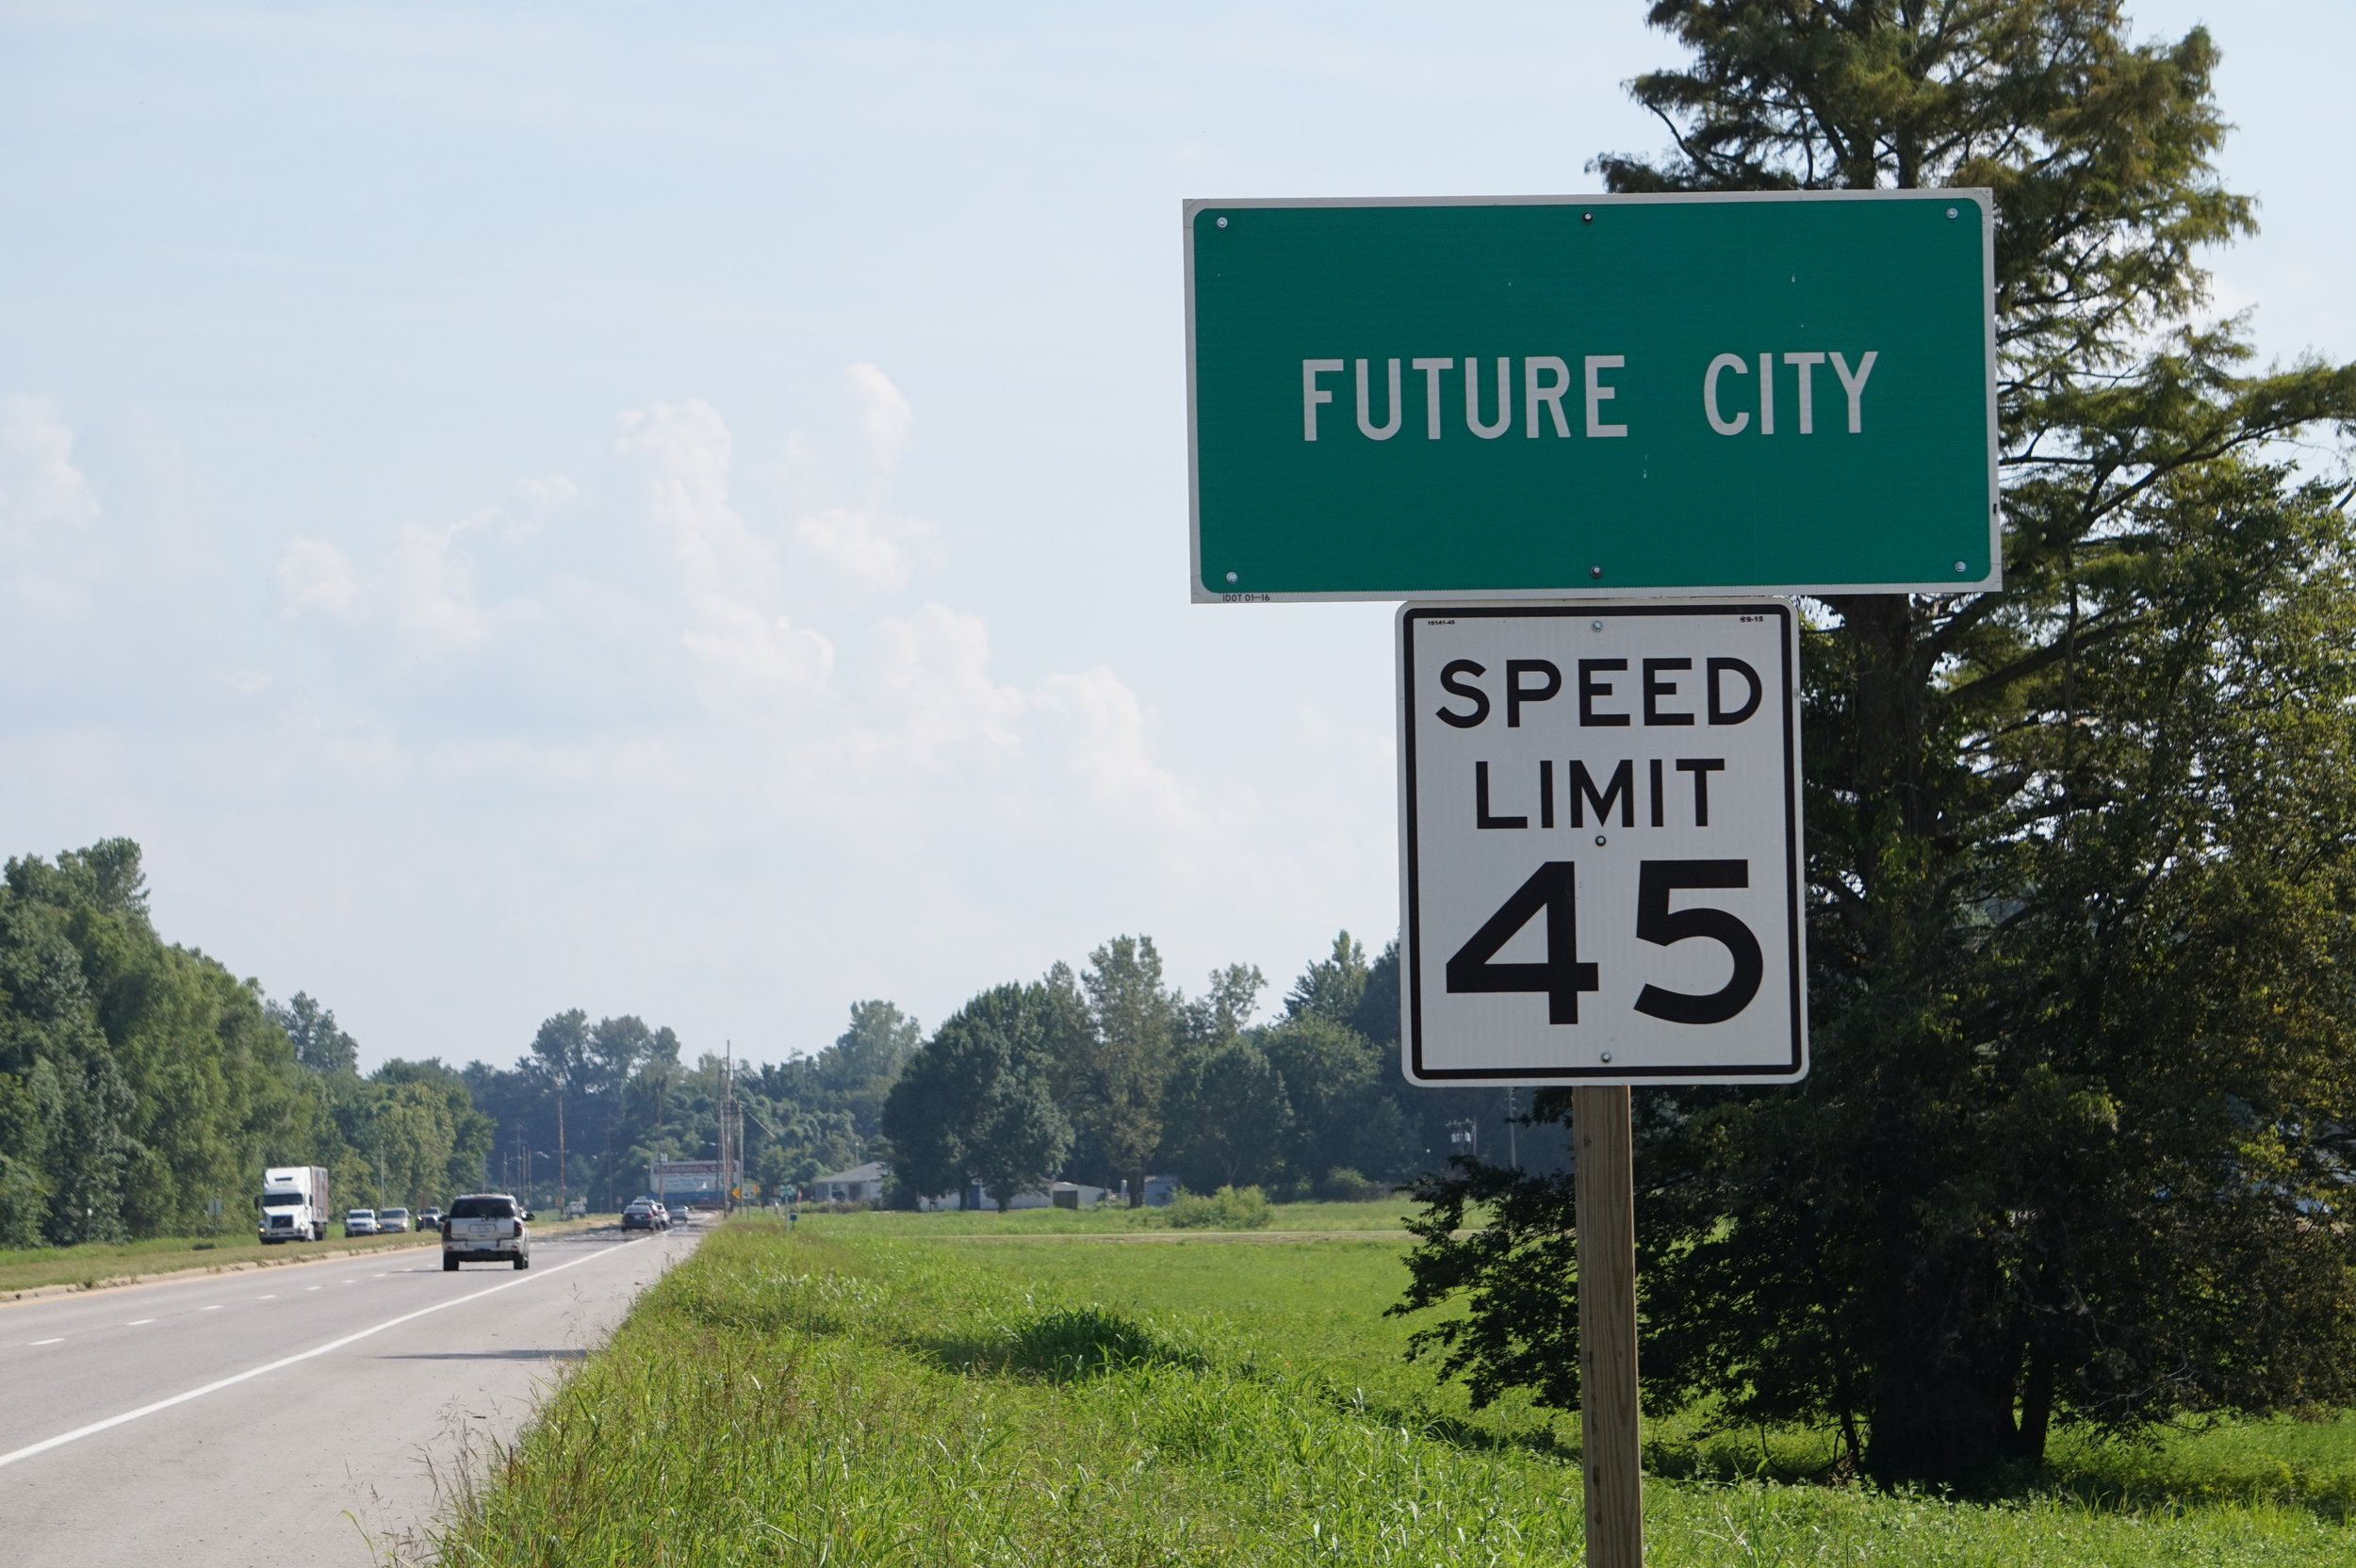 The Future City marker on US 51 approaching Cairo, IL.